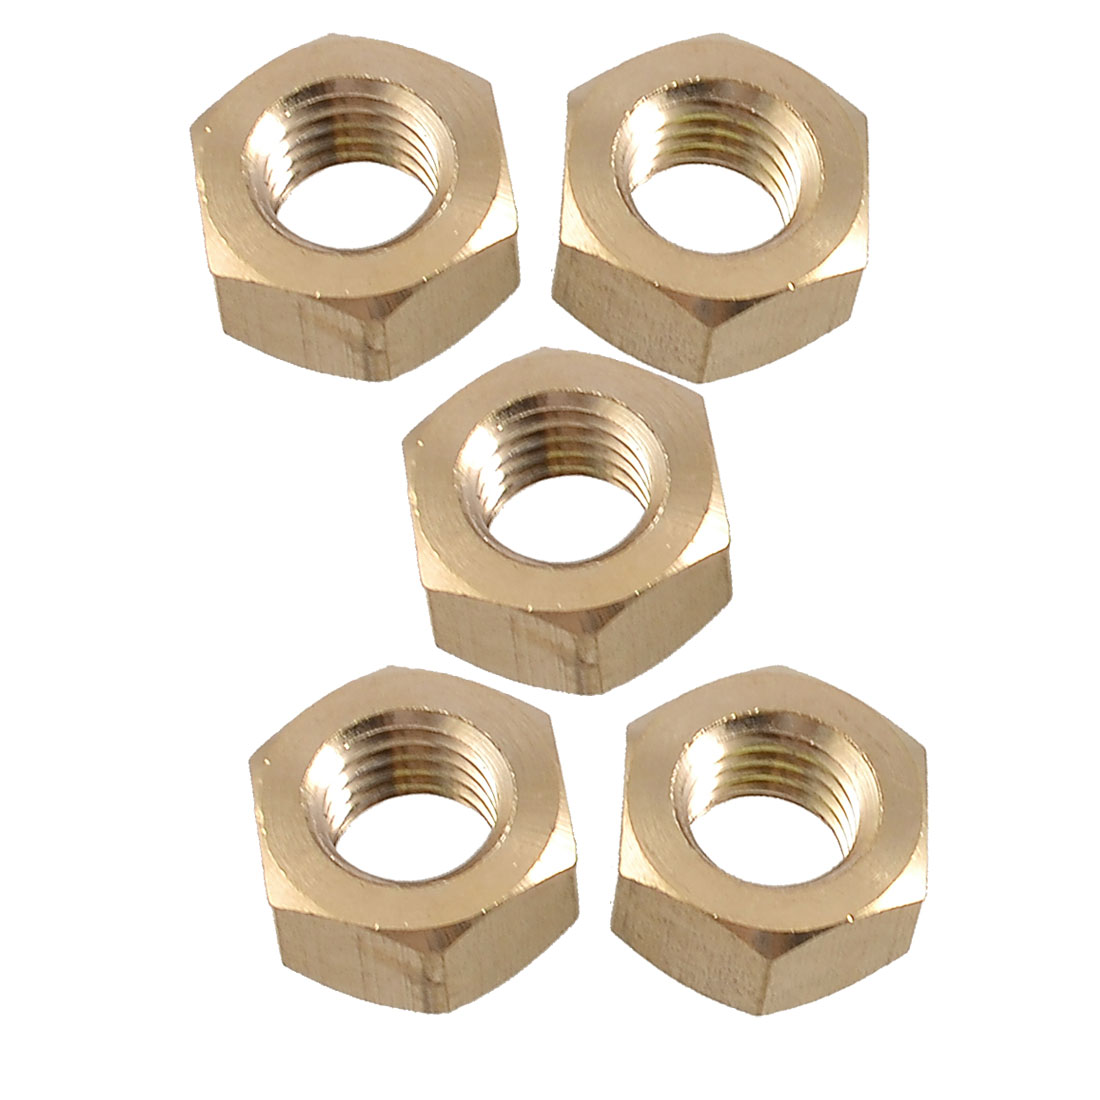 "5 Pcs 35/64"" Female Thread Hex Head Grub Screw Nuts Gold Tone"